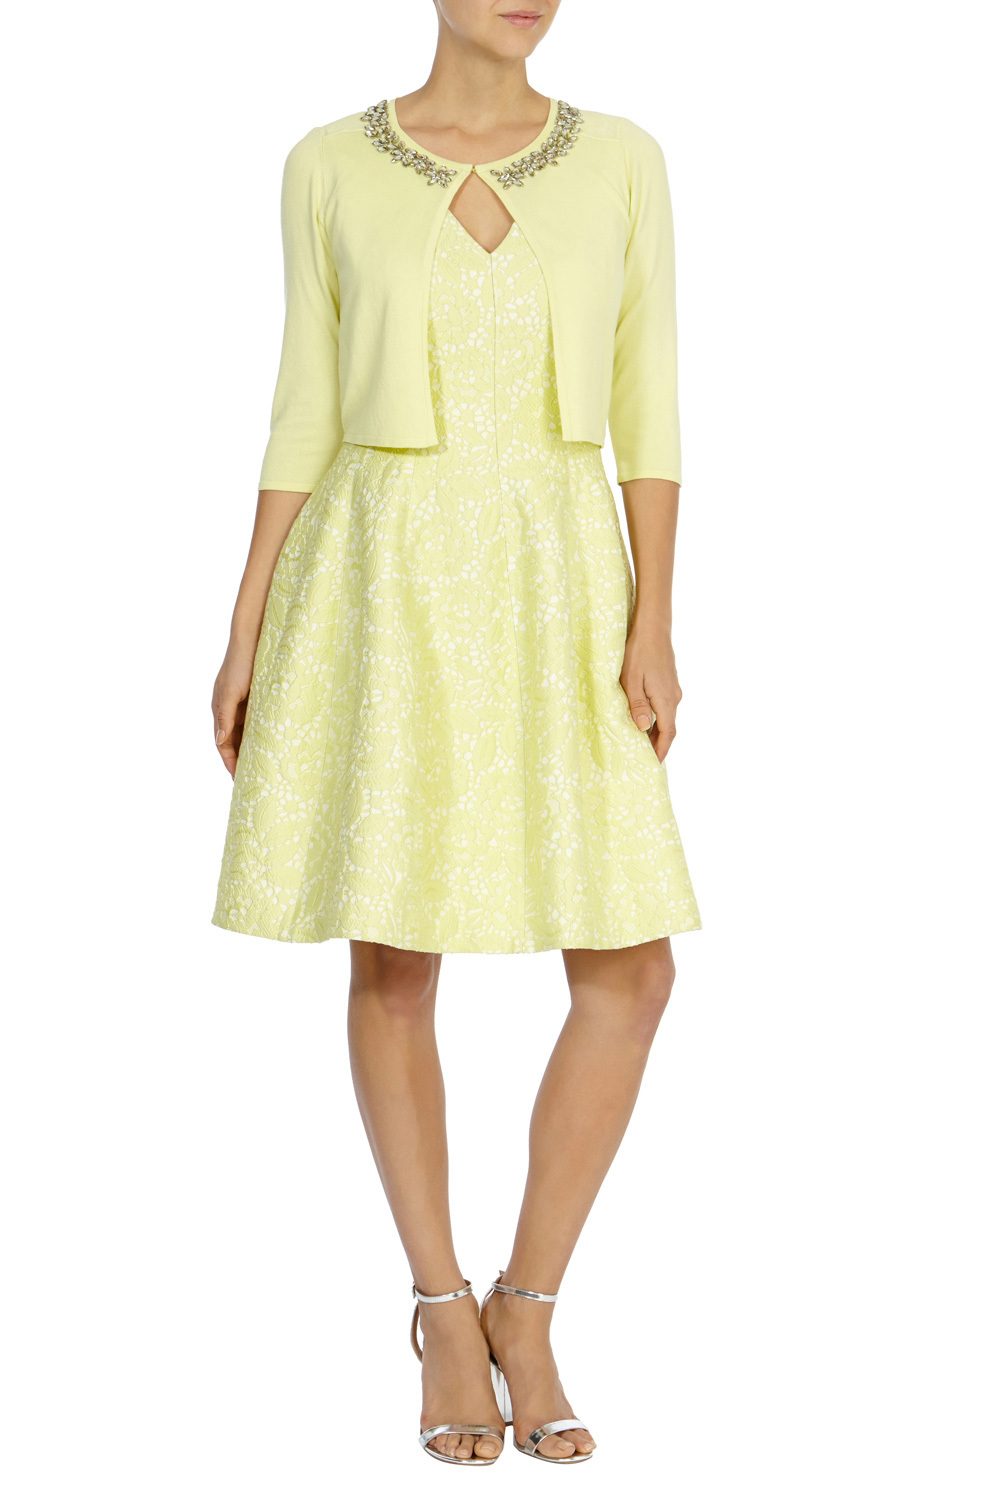 Chrissi Embellished Cover Up - neckline: round neck; pattern: plain; style: bolero/shrug; length: cropped; predominant colour: primrose yellow; fibres: viscose/rayon - 100%; occasions: occasion; fit: slim fit; sleeve length: 3/4 length; sleeve style: standard; texture group: knits/crochet; pattern type: knitted - fine stitch; embellishment: sequins; season: a/w 2015